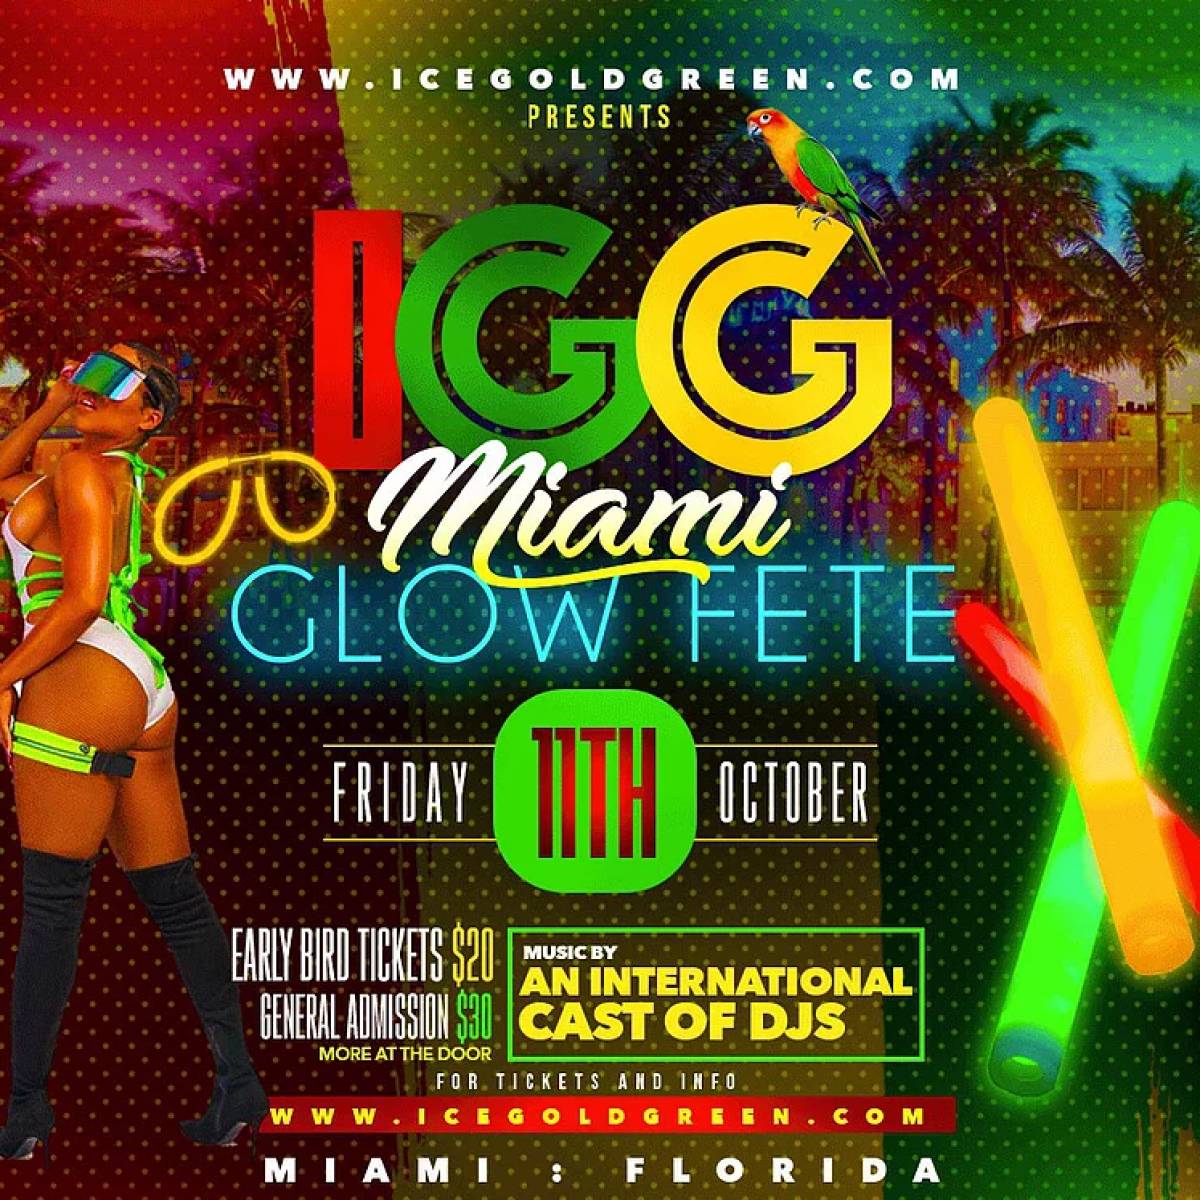 Glow Fete flyer or graphic.